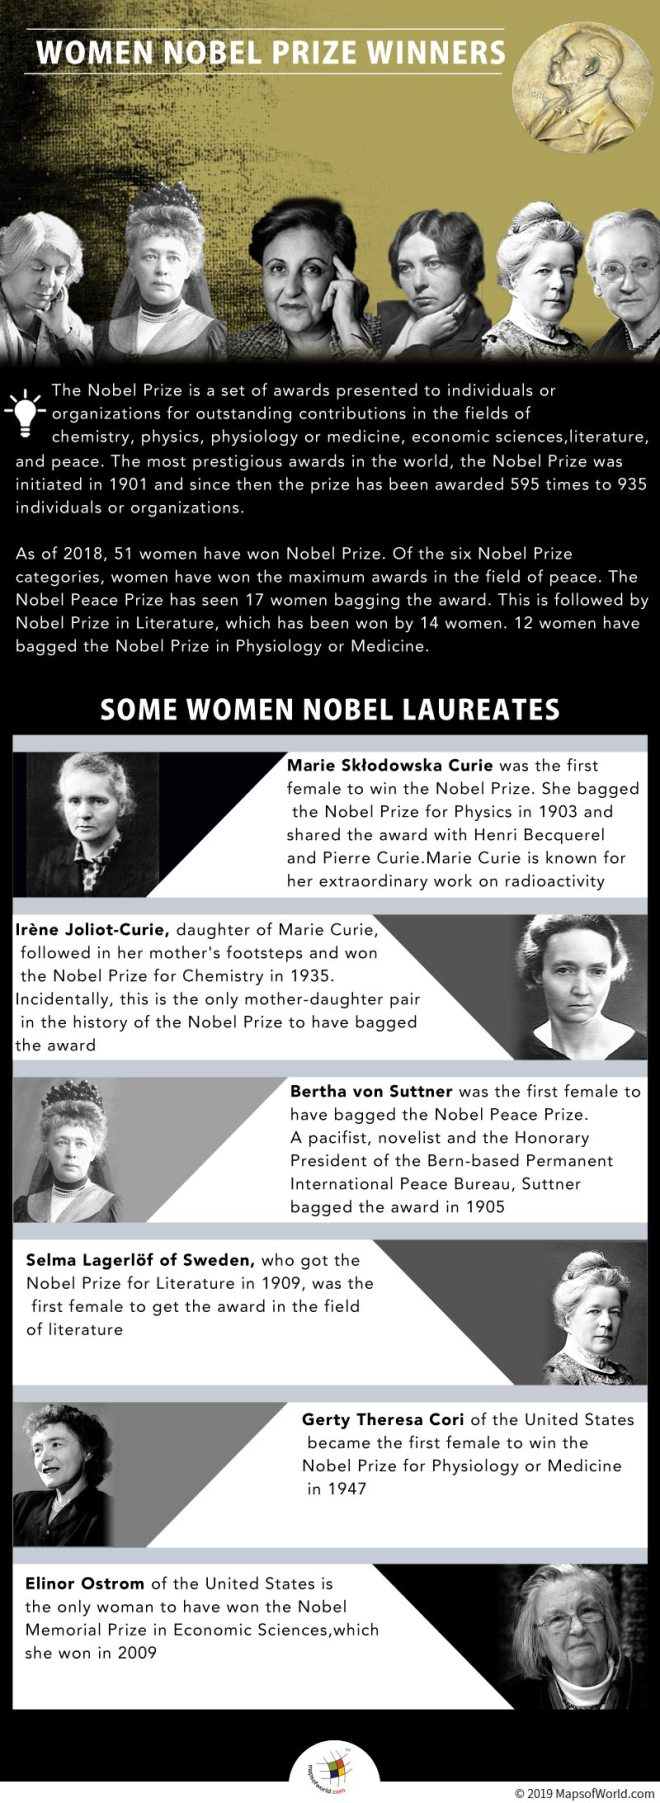 Infographic Giving Details on Women Nobel Prize Winners